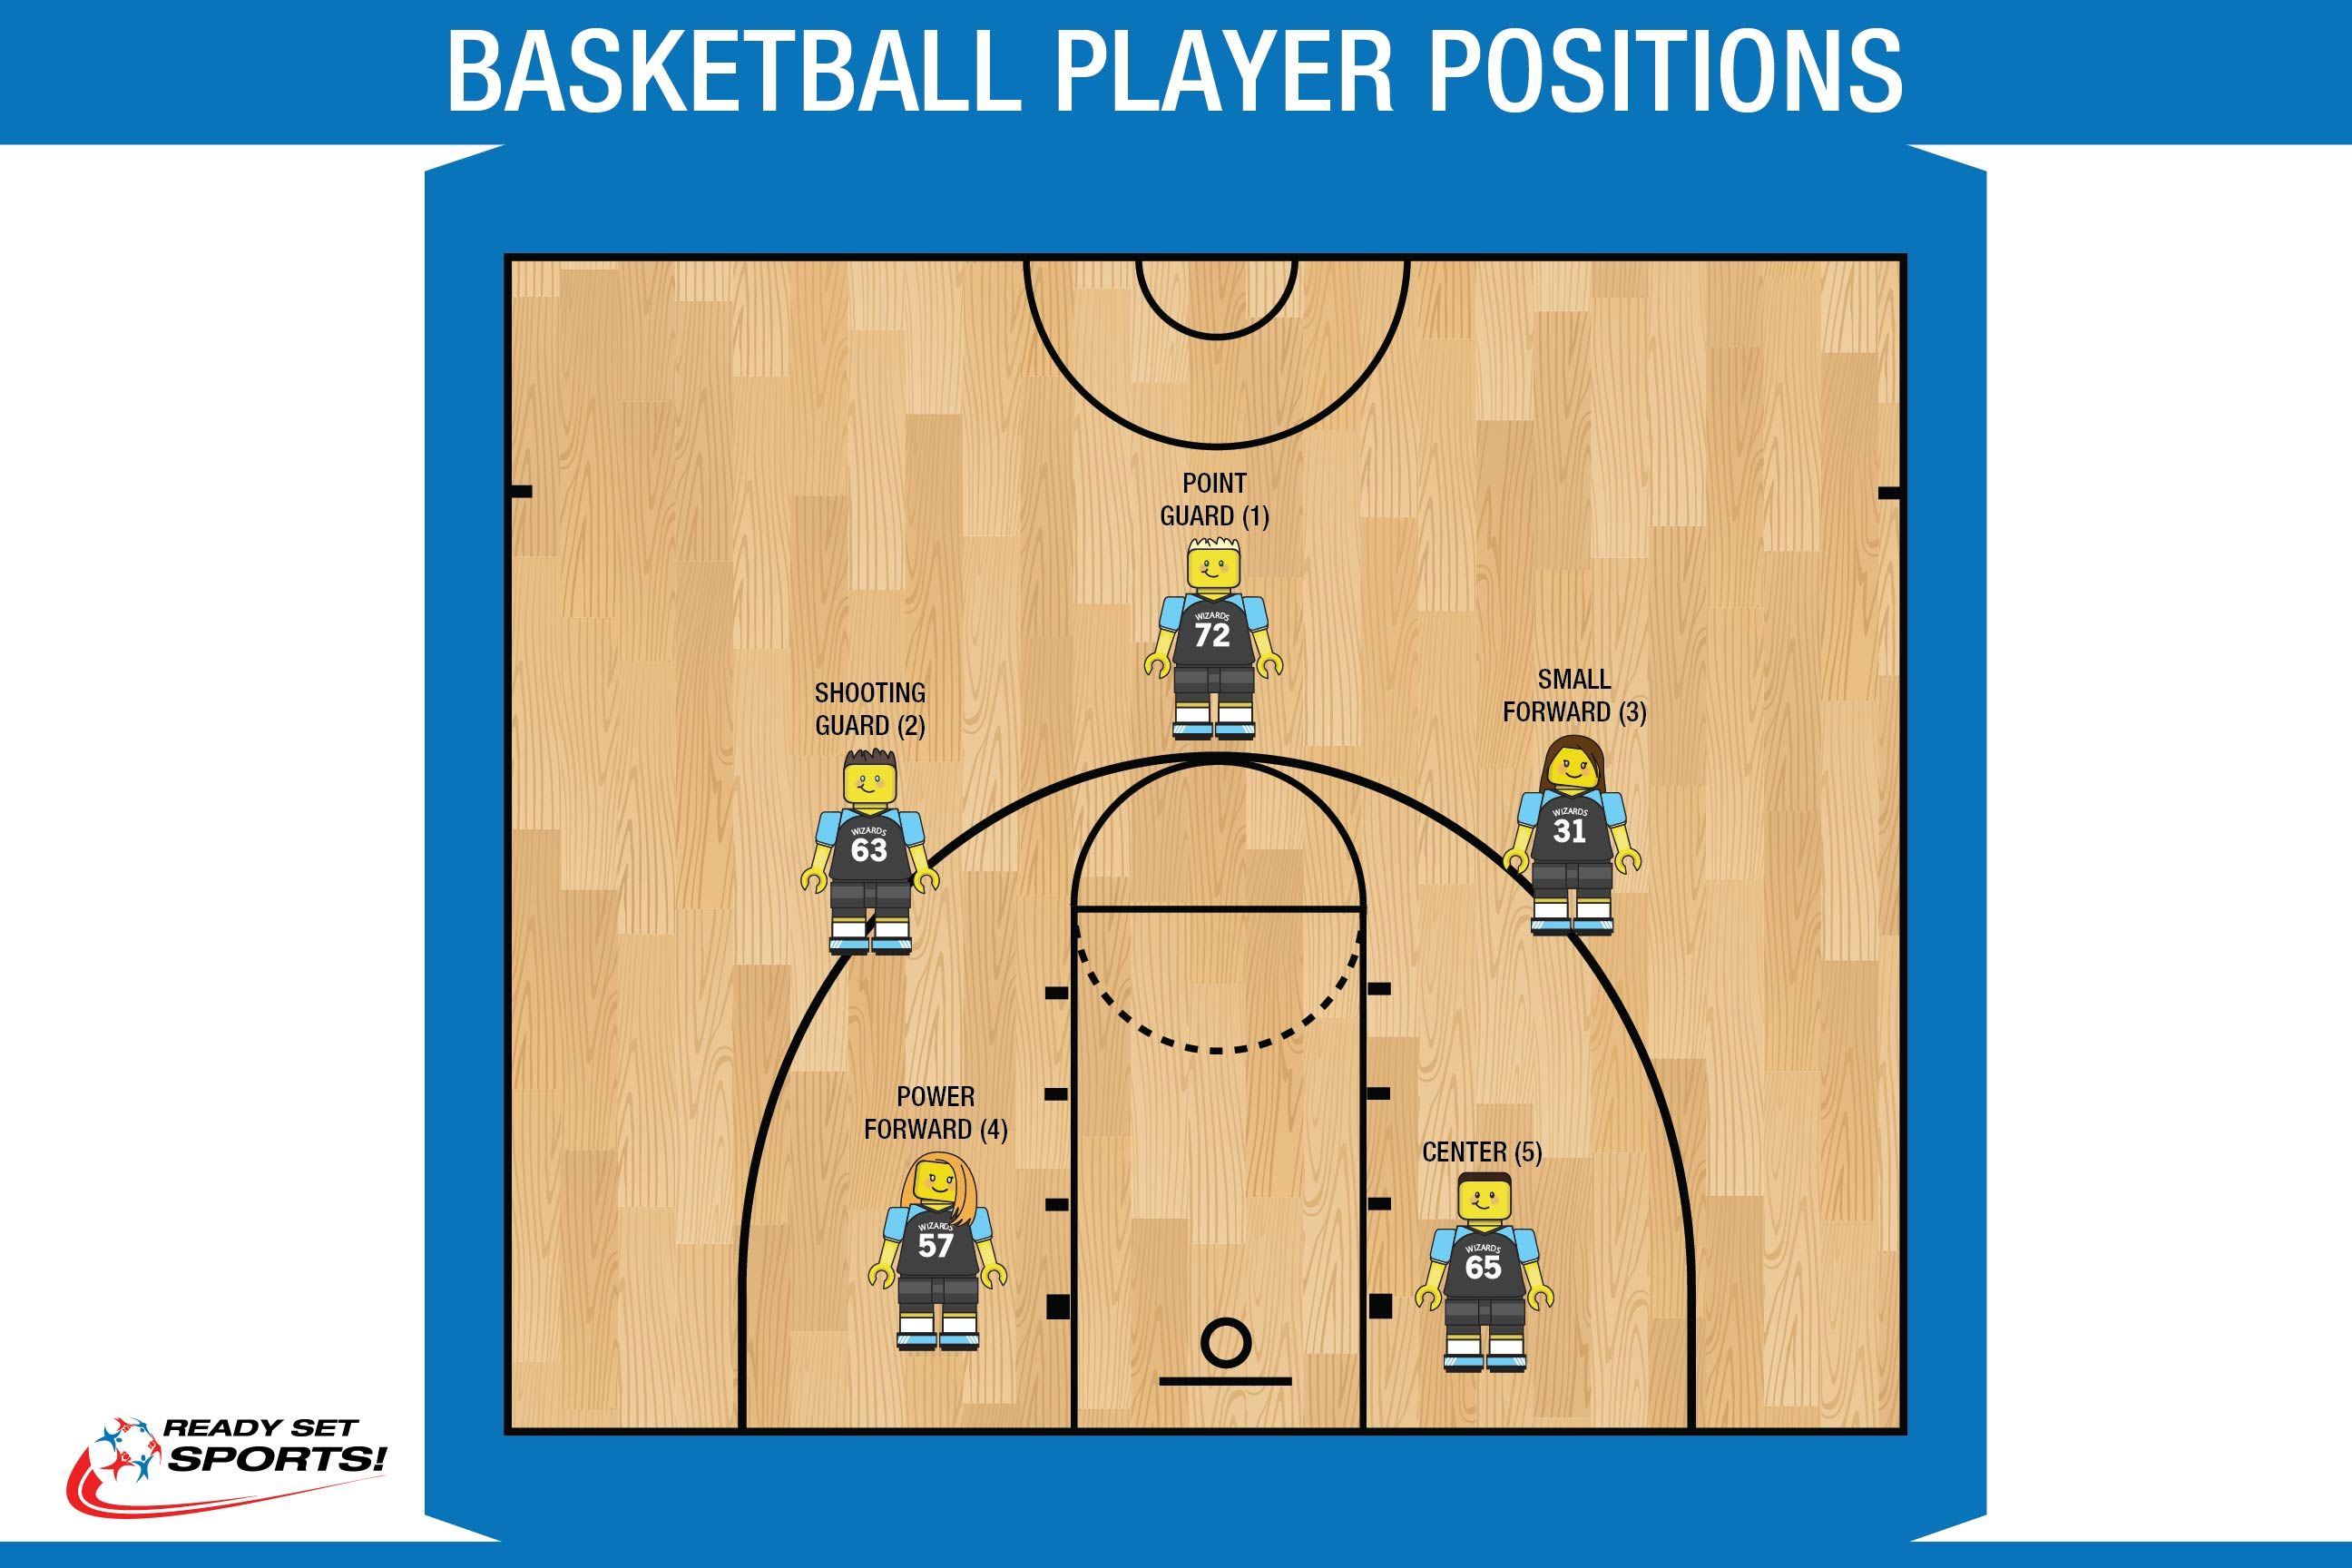 Lego Figure Player Positions Guide Basketball Positions Youth Basketball Basketball